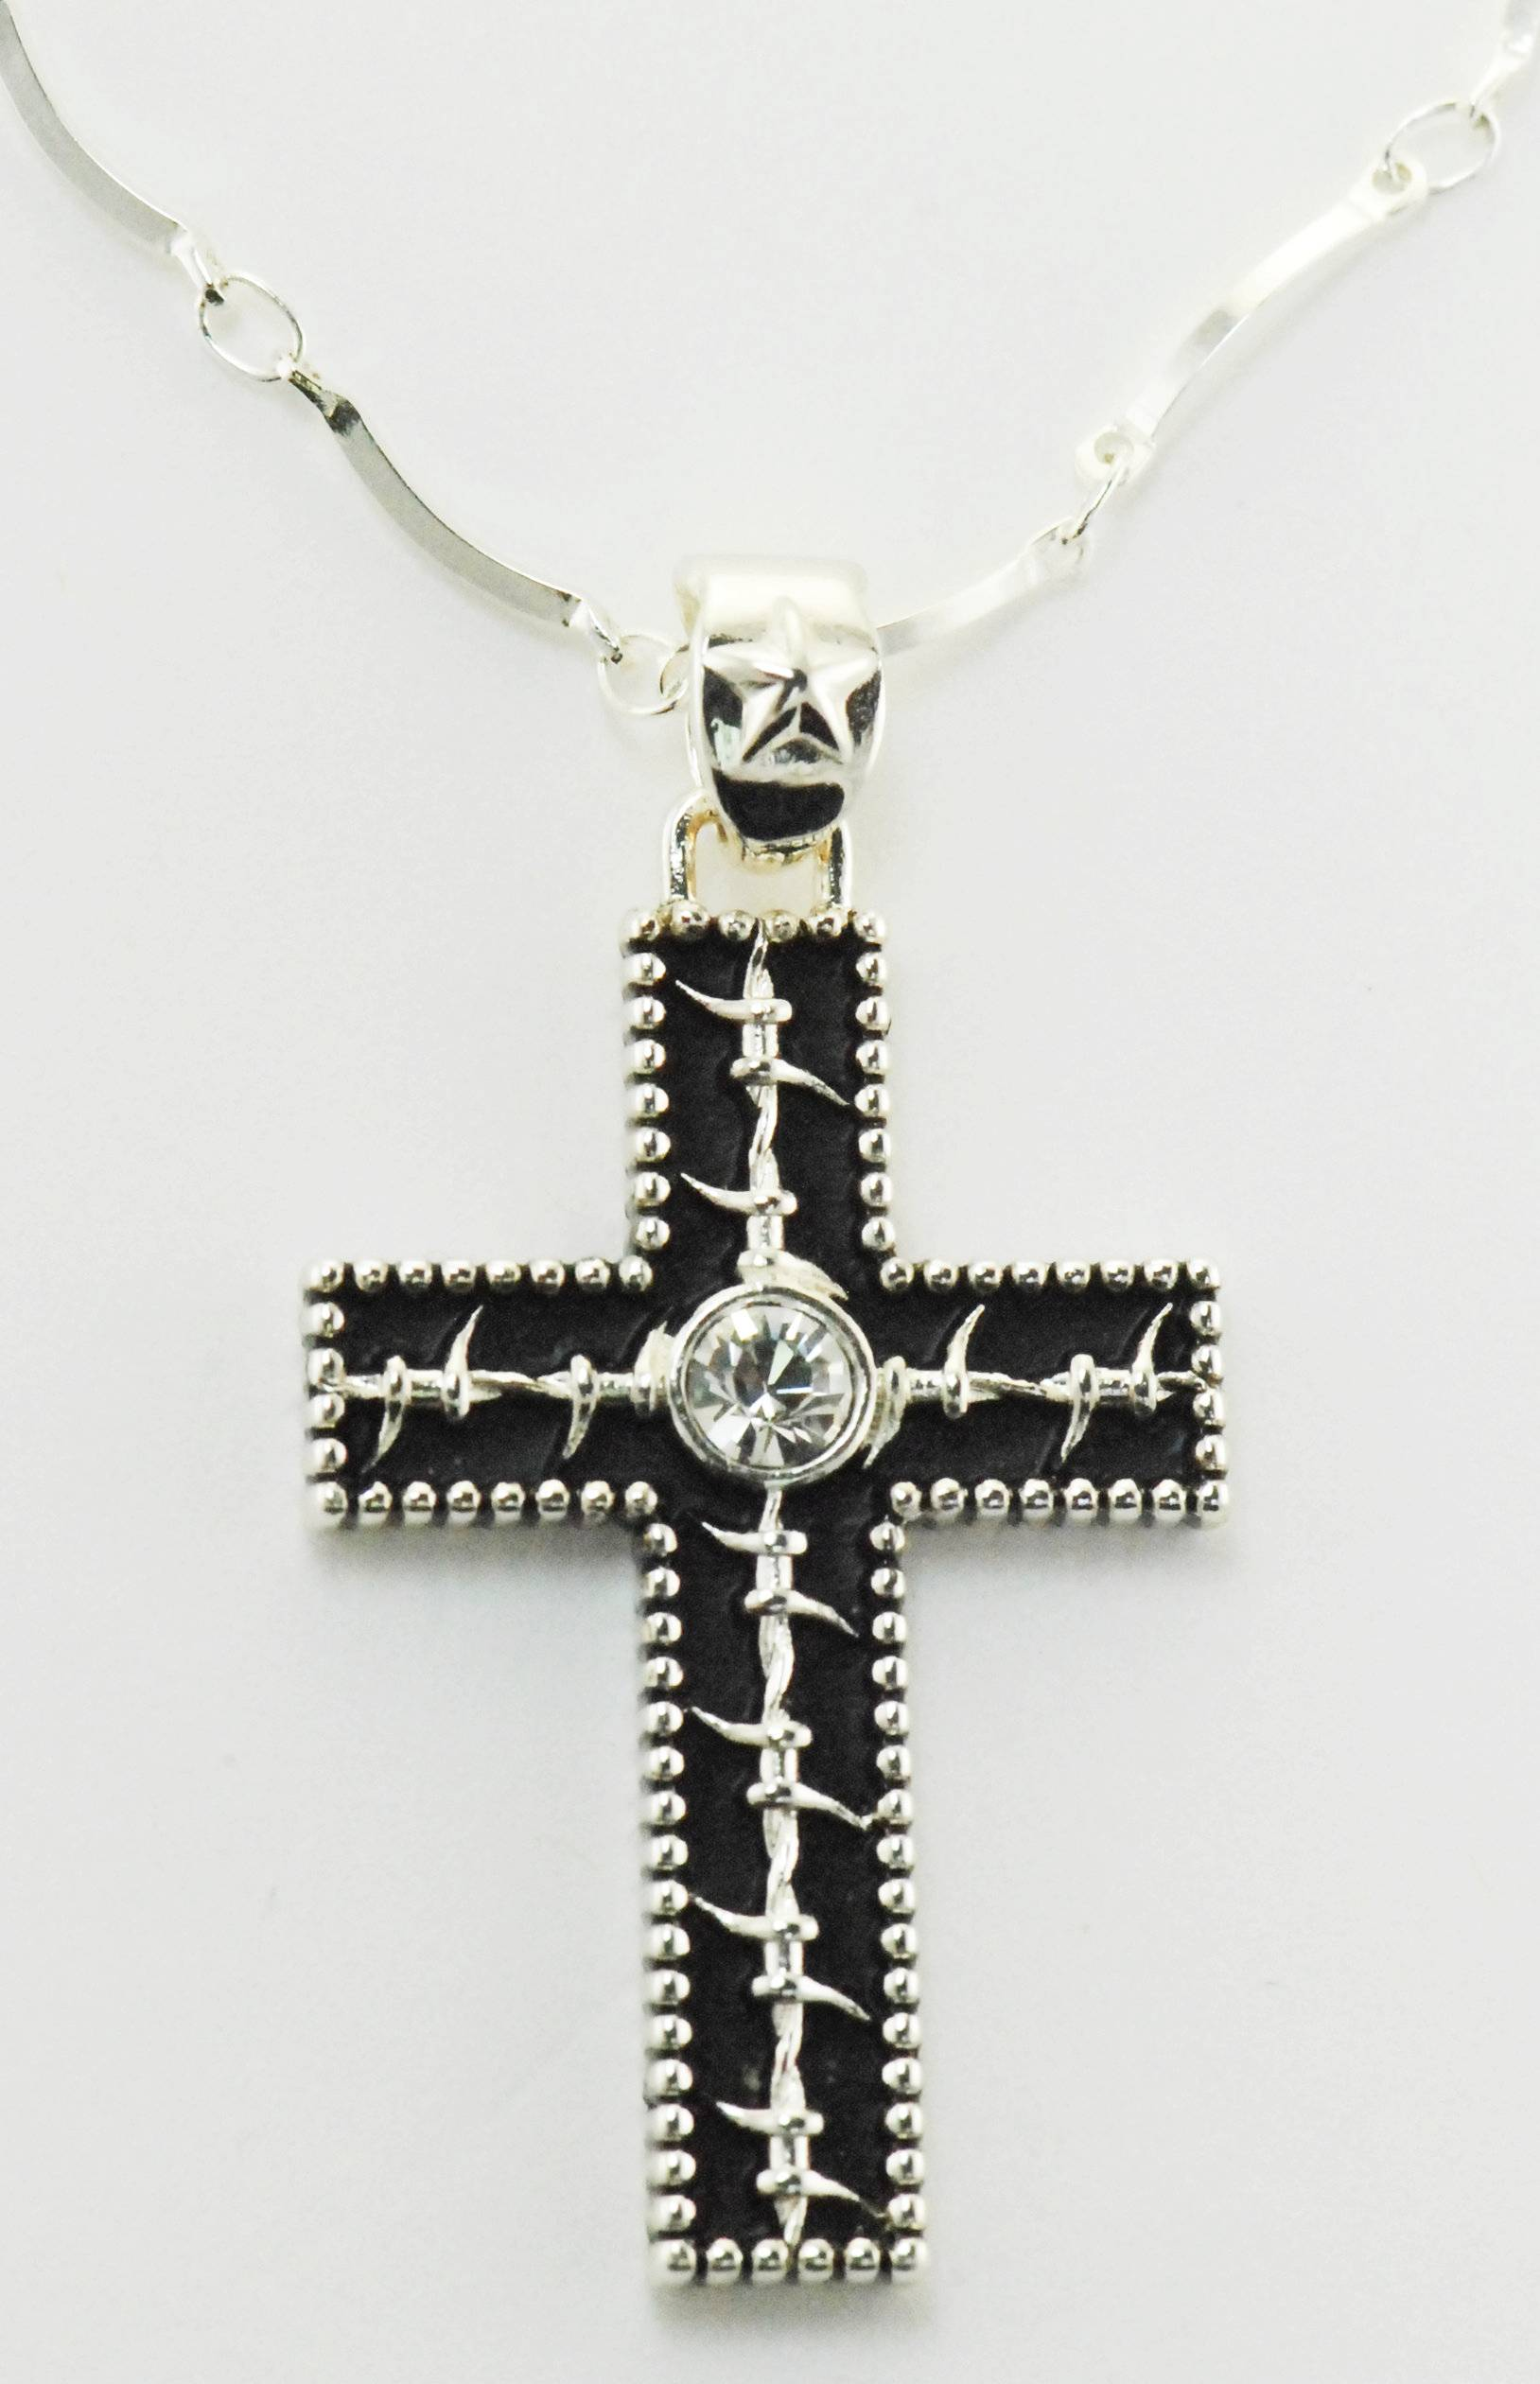 Western Edge Jewelry Barb Wire Cross Necklace